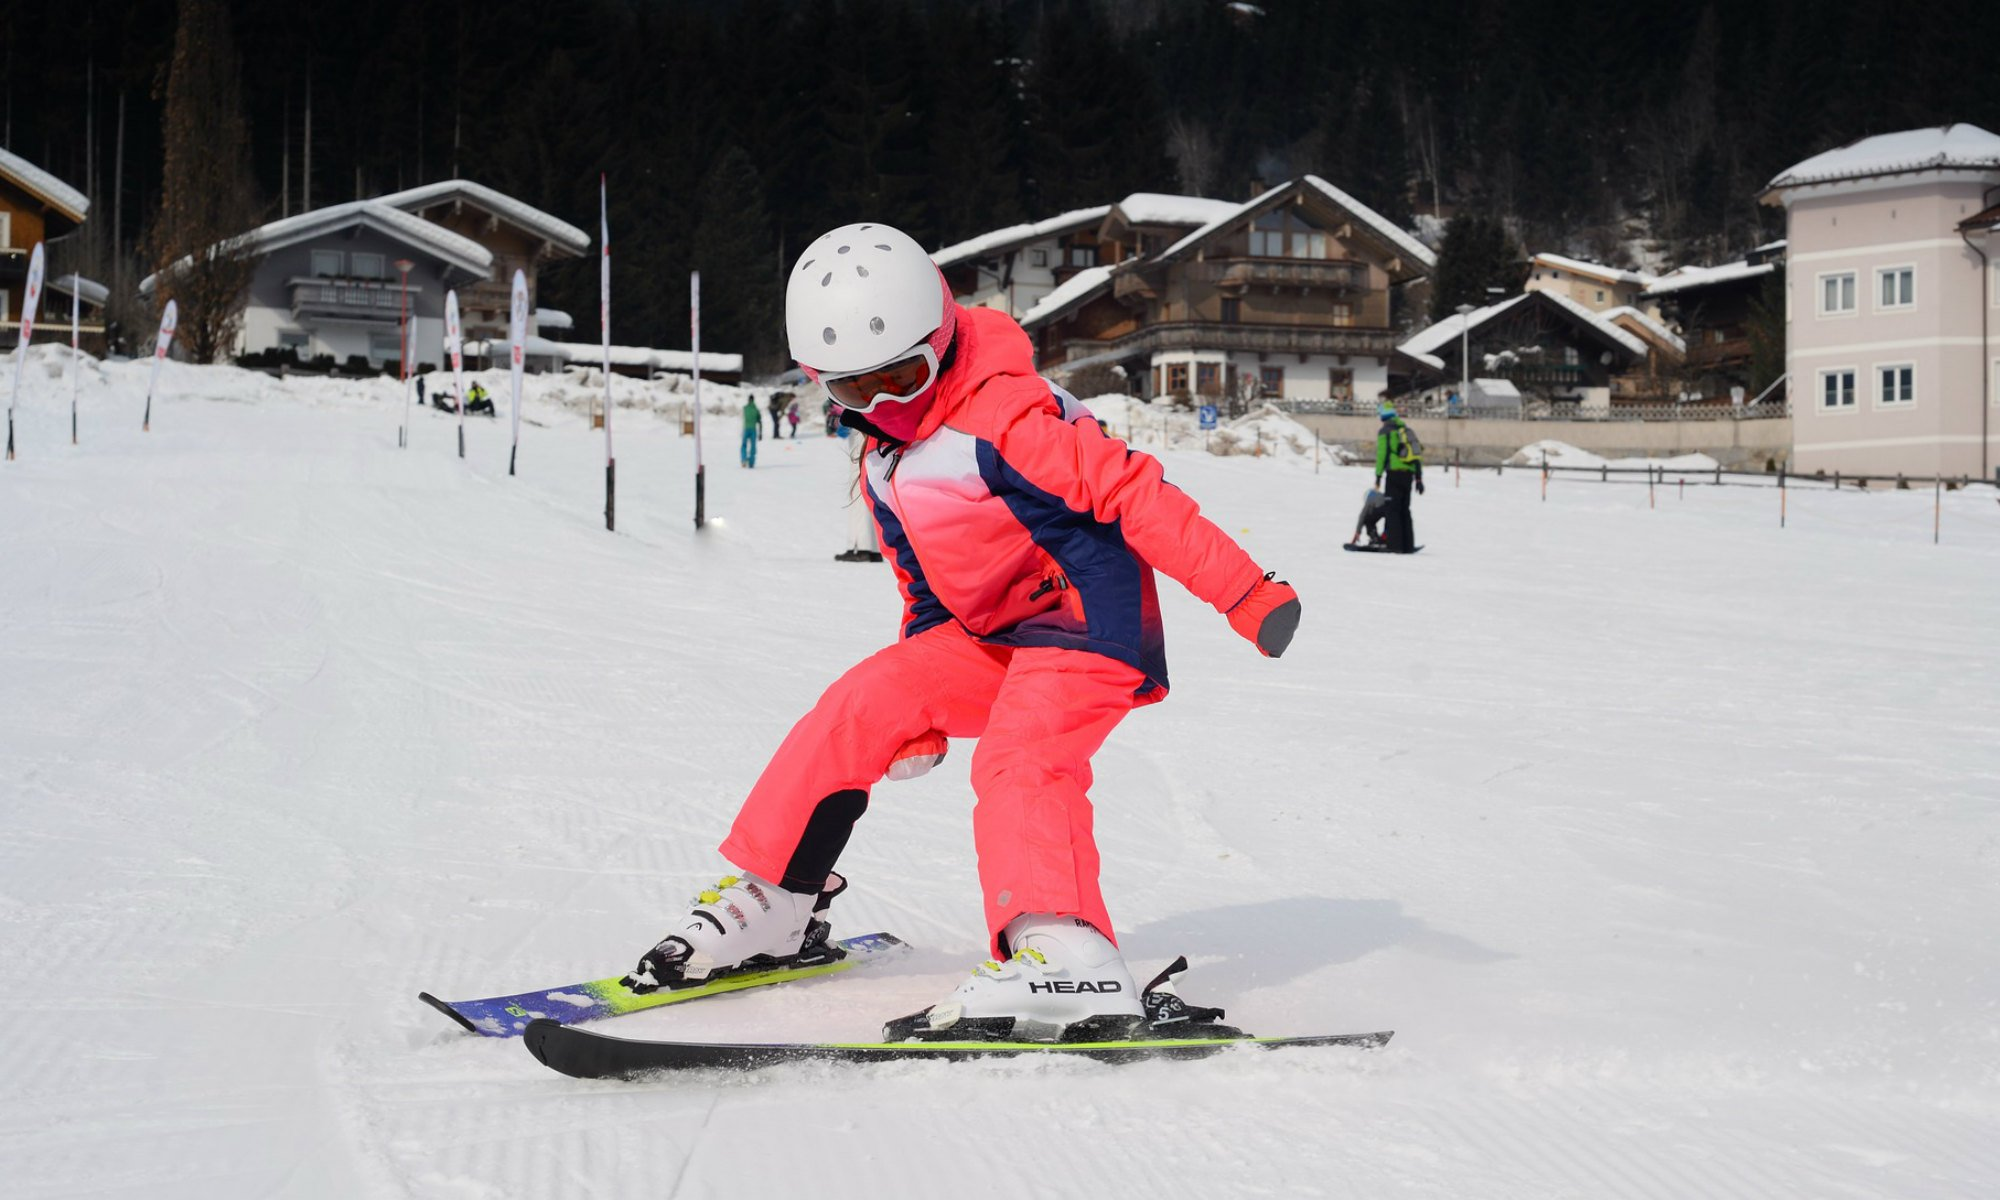 Child skiing down the slope in a snow plough turn.